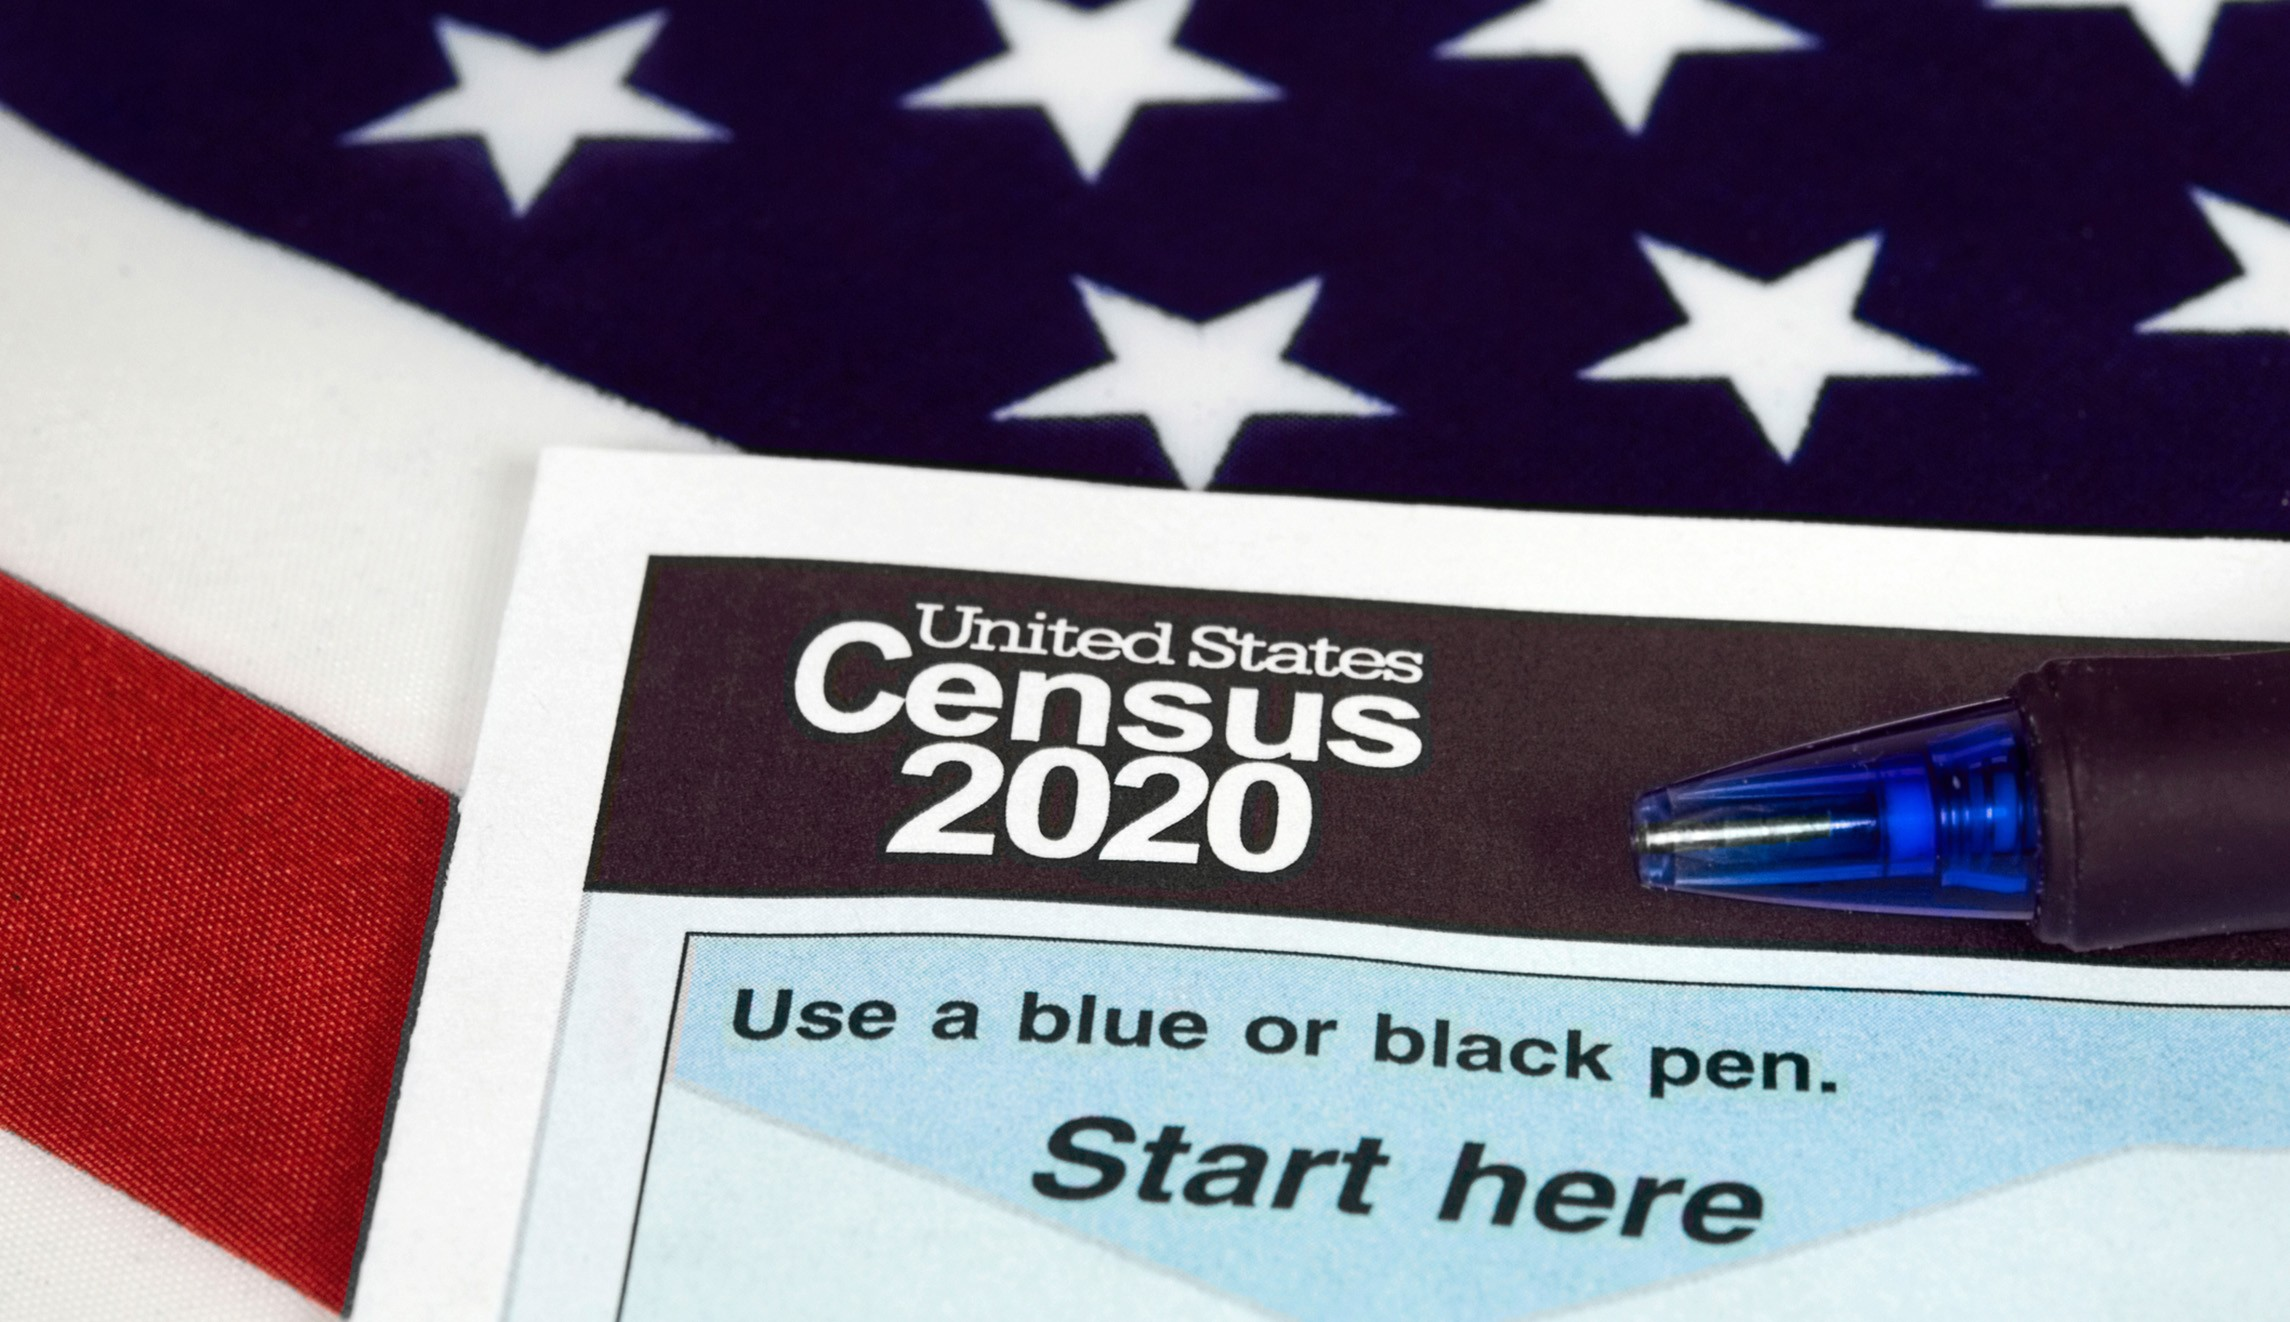 Learn More About the Census